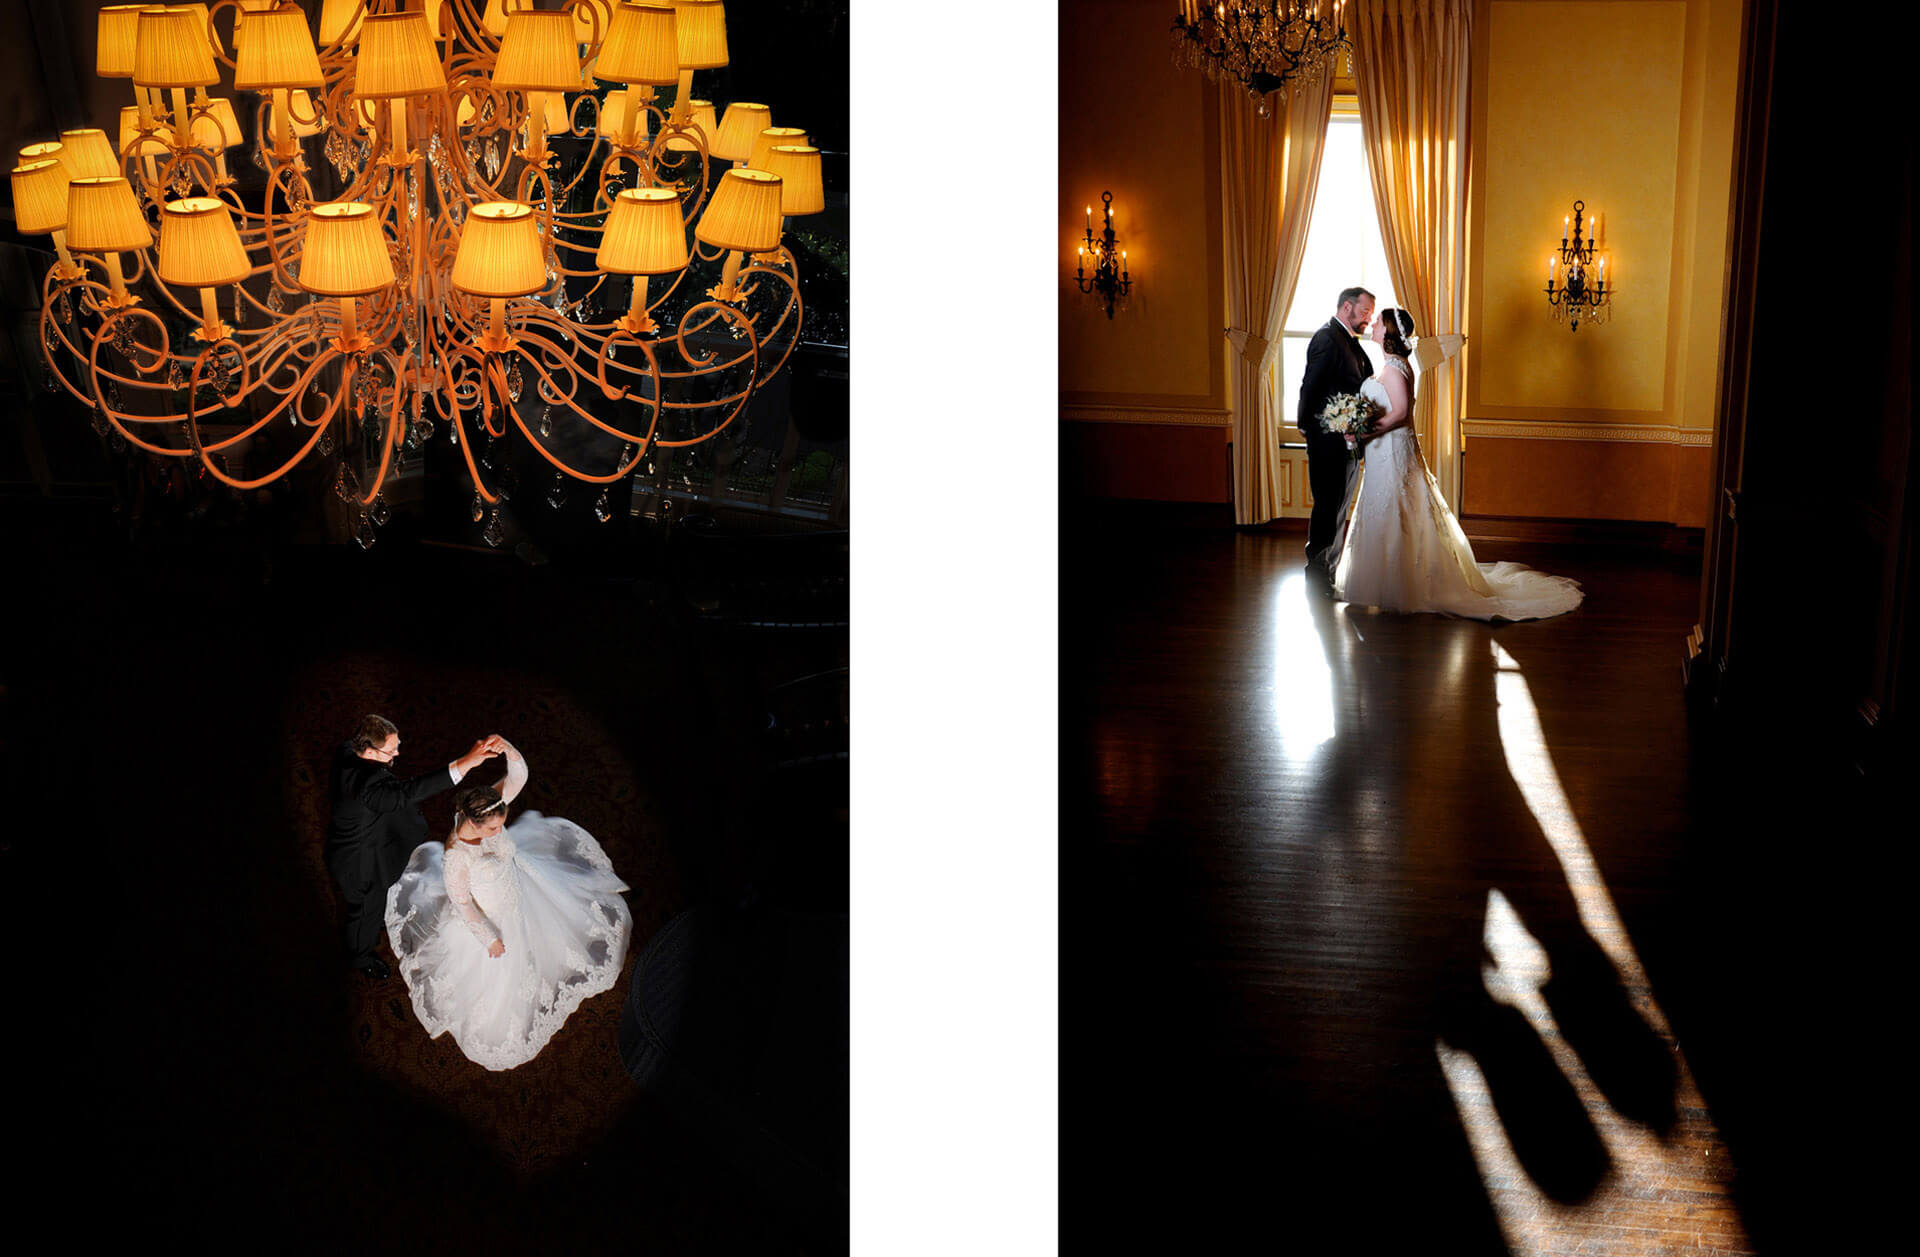 Two photos featuring Michigan wedding couples showcasing fine art and creativity for their wedding photos.